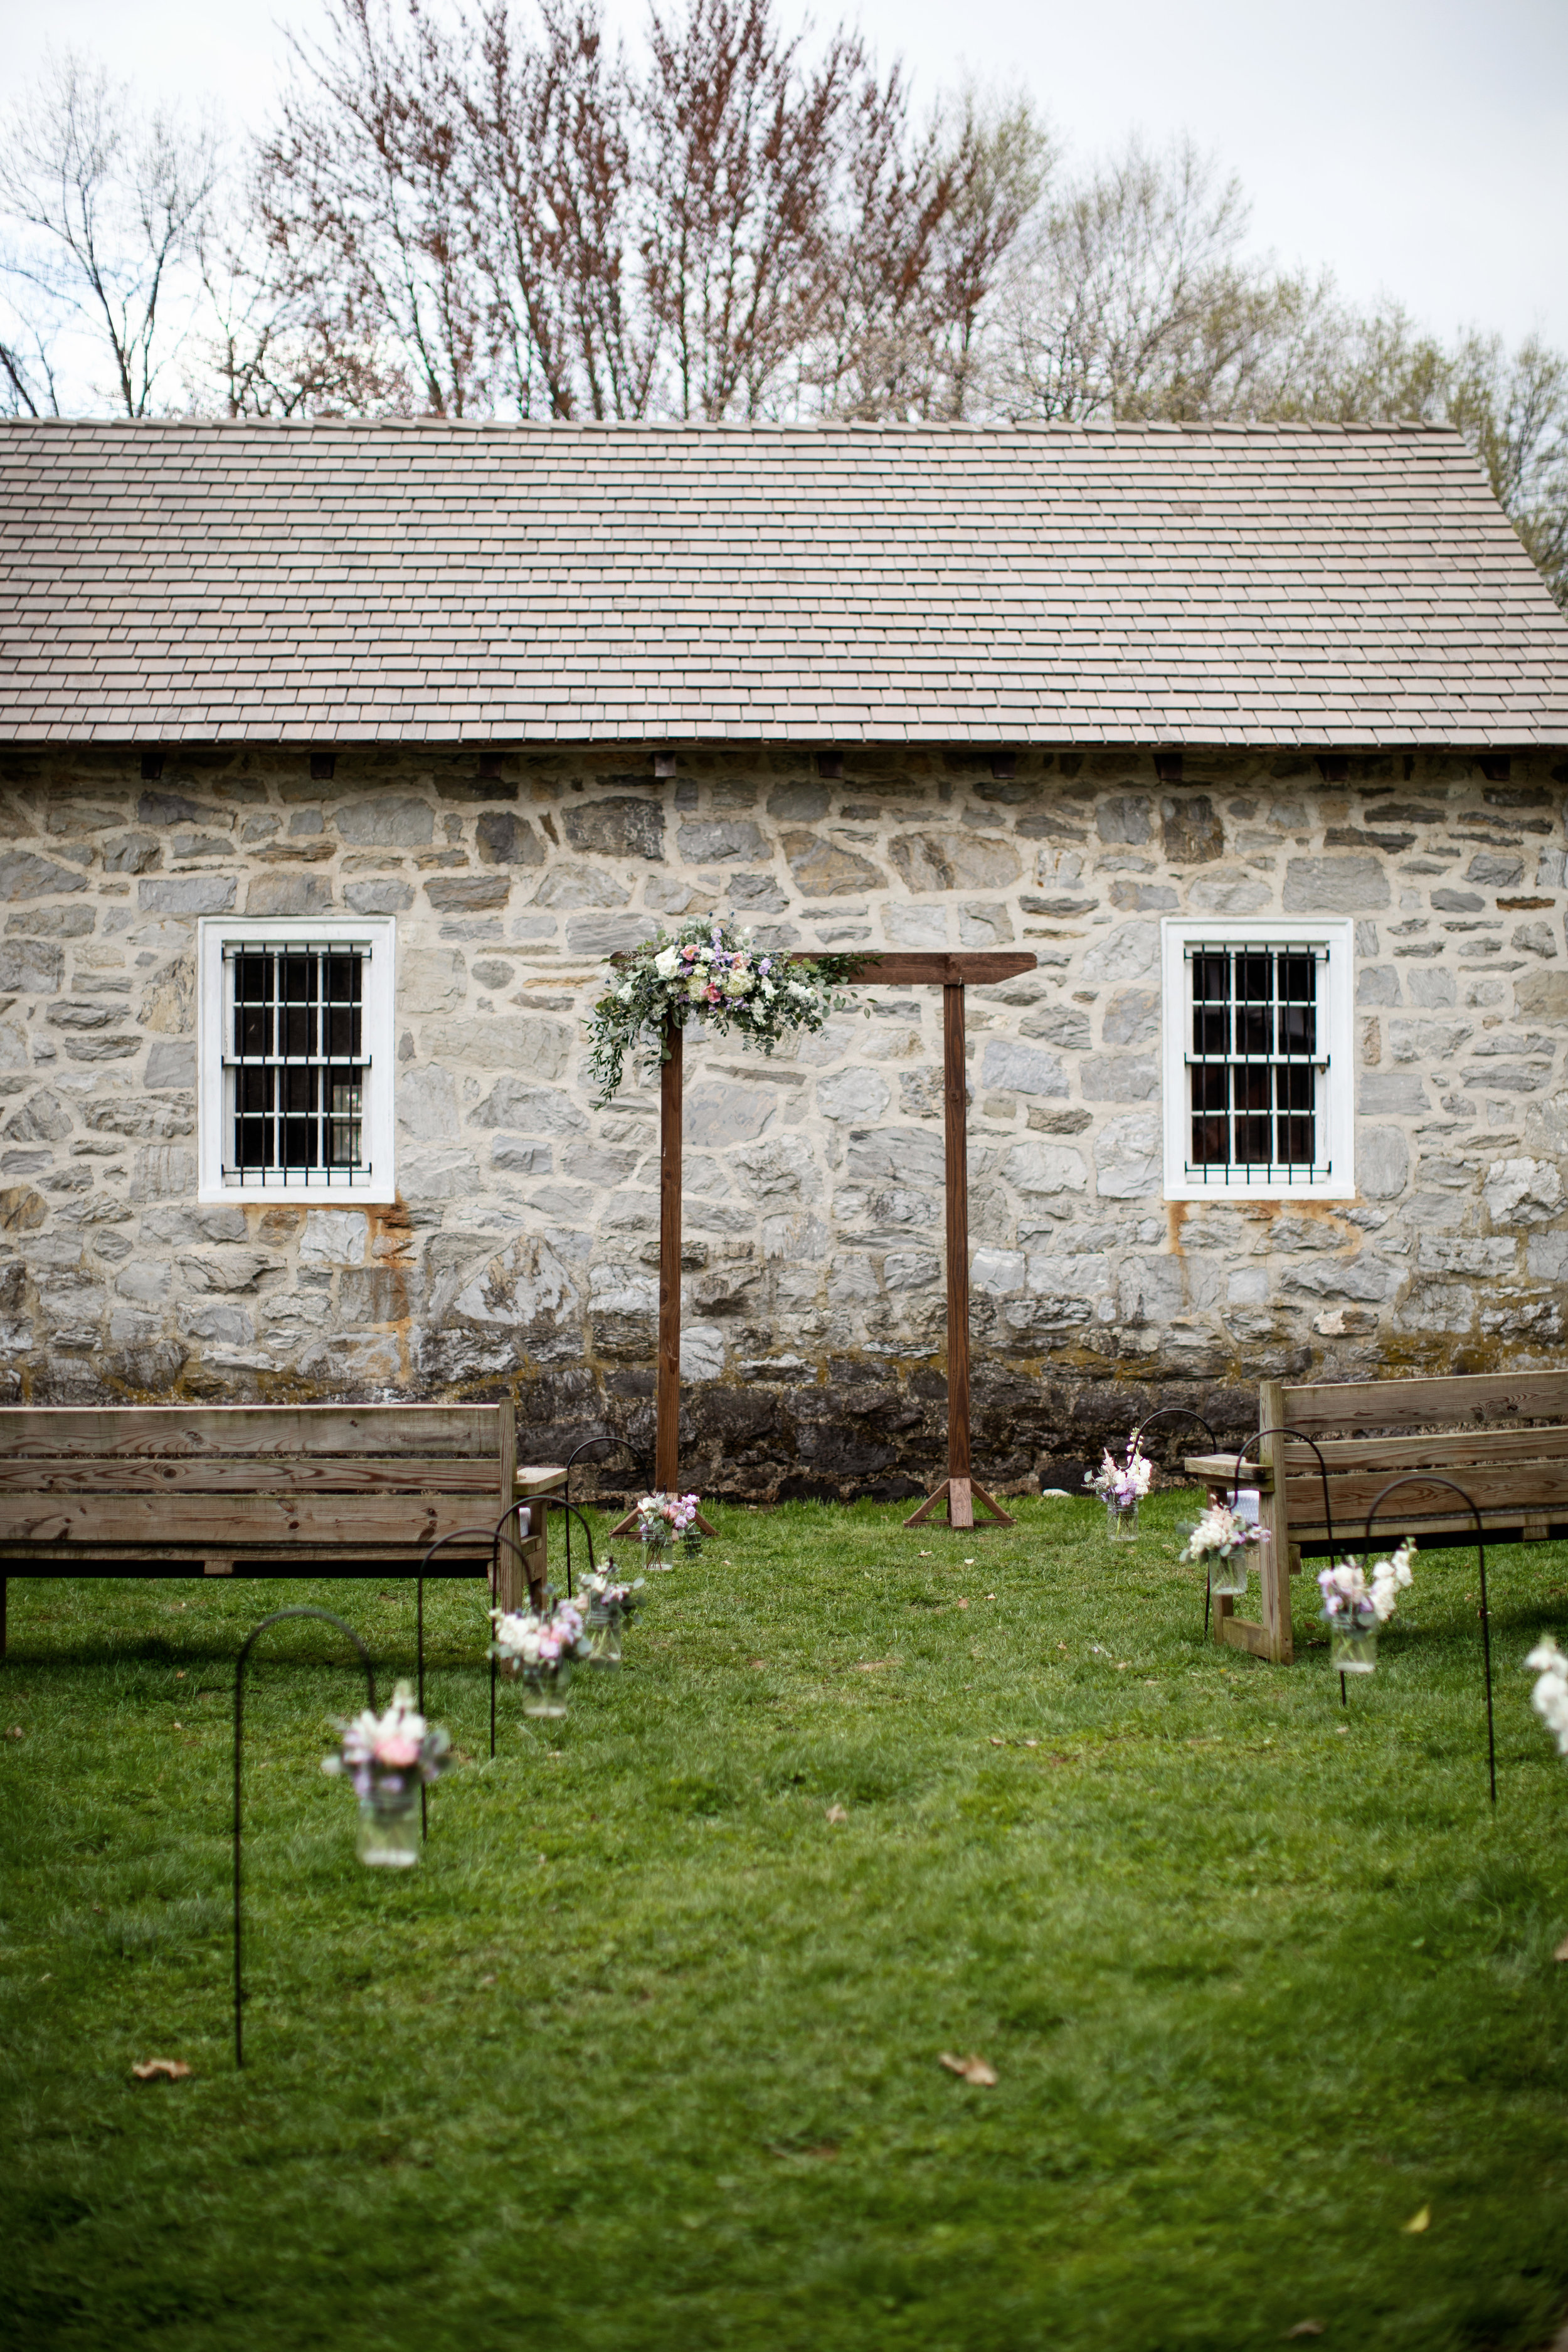 Ceremony flowers don't have to be huge and elaborate, an offset arbor spray and shepherds hooks bring just the right touch of color to frame an already beautiful setting.